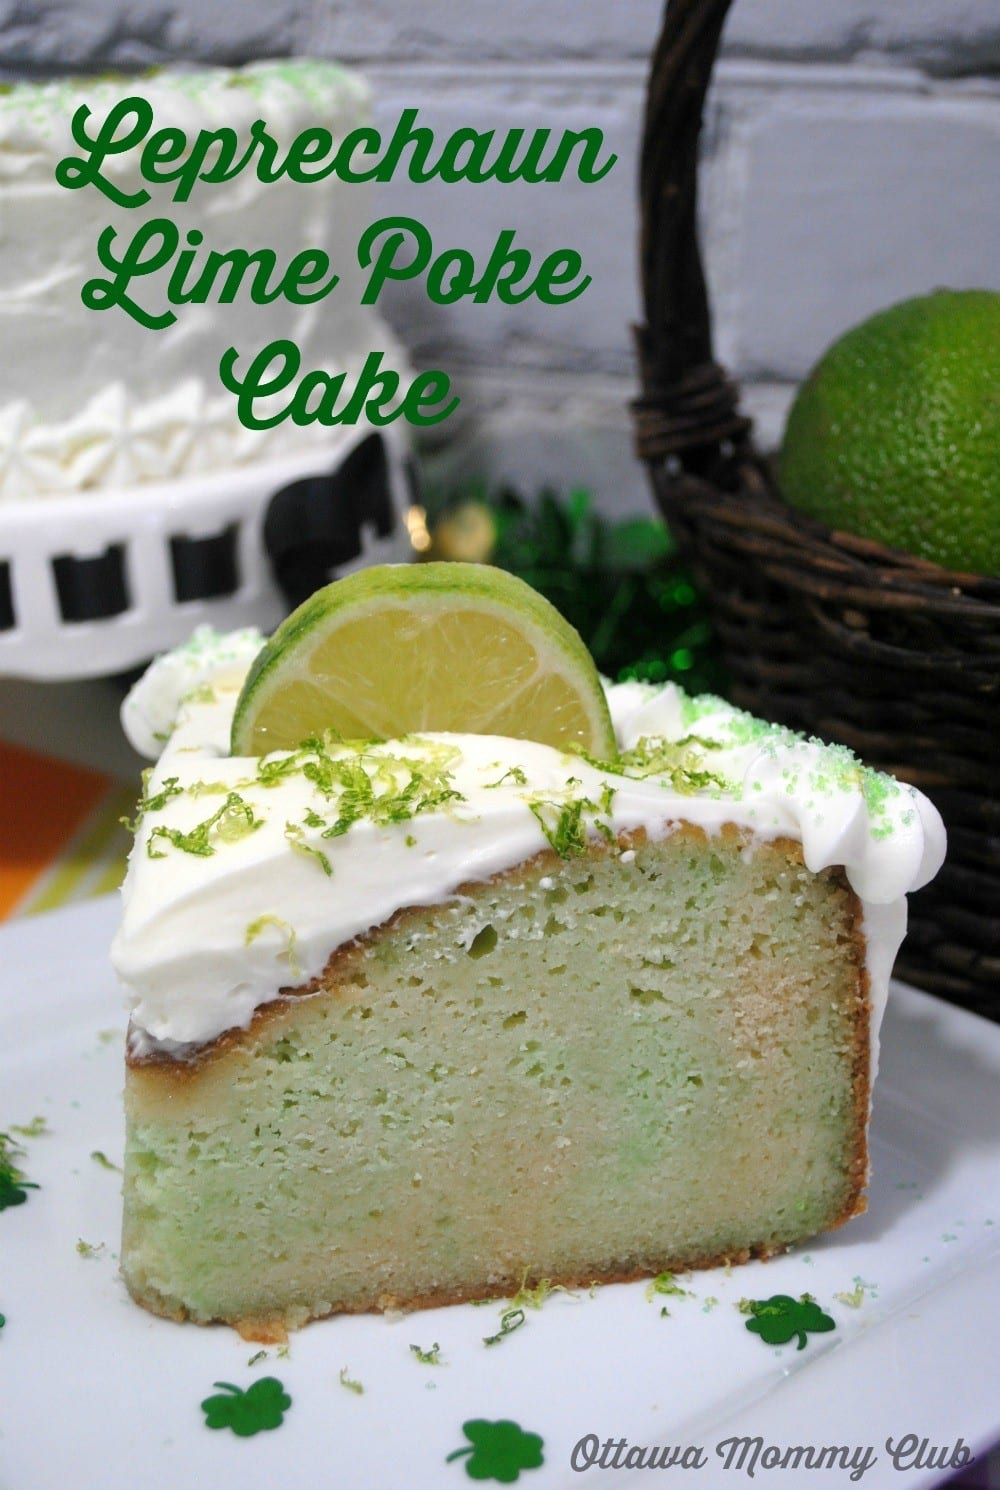 Lime Poke Cake Recipe For St. Patricks Day